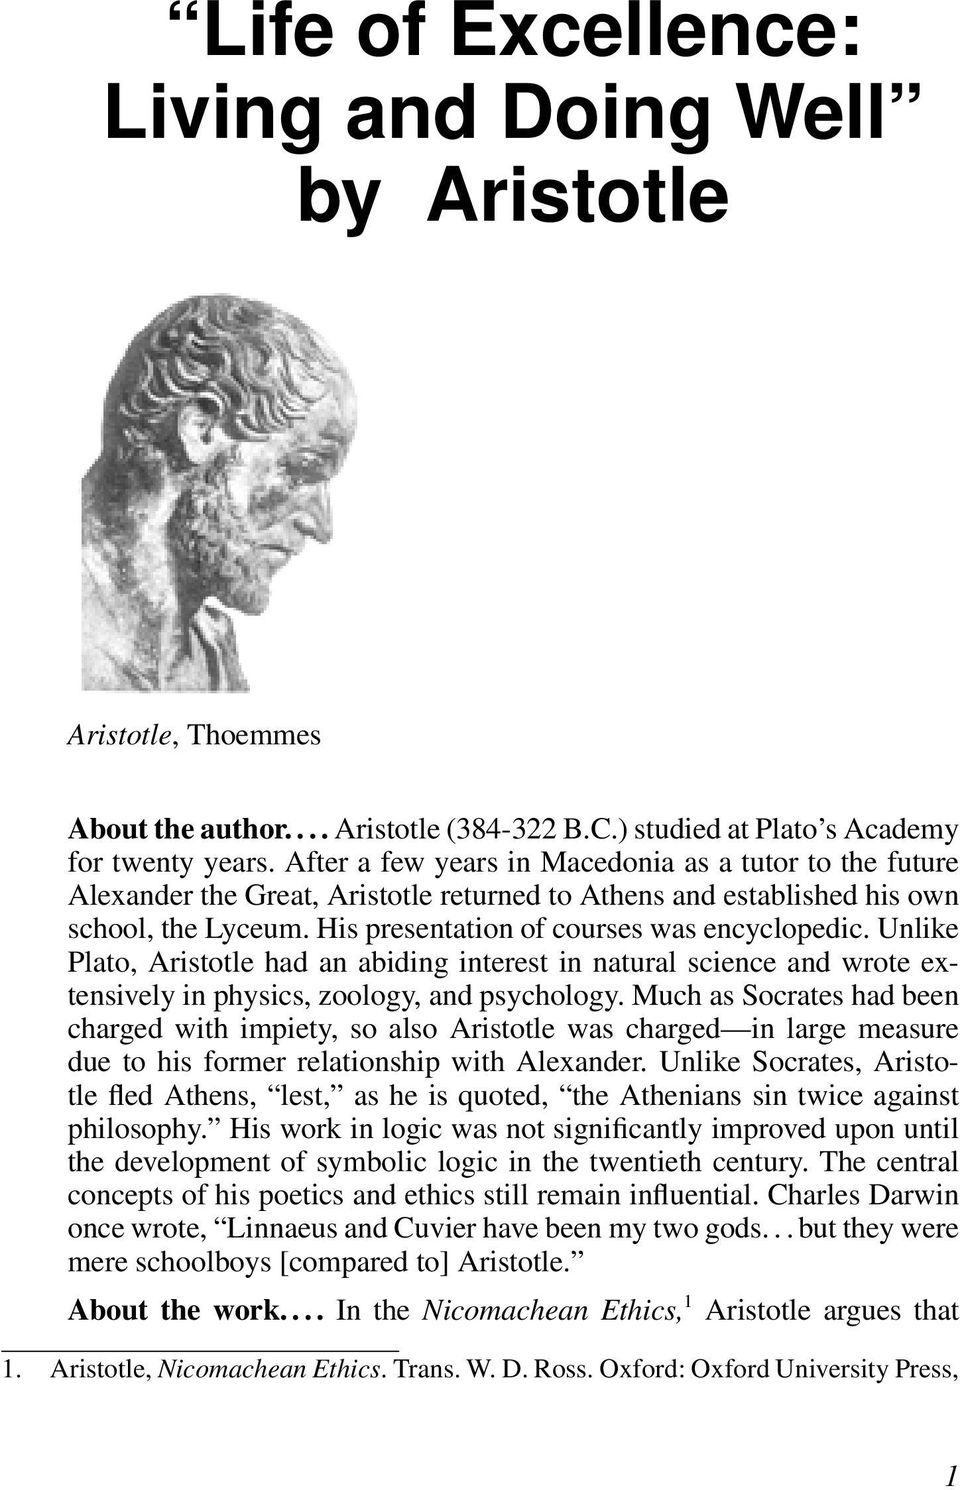 Achieving Excellence in Terms of Aristotle's Nichomachean Ethics